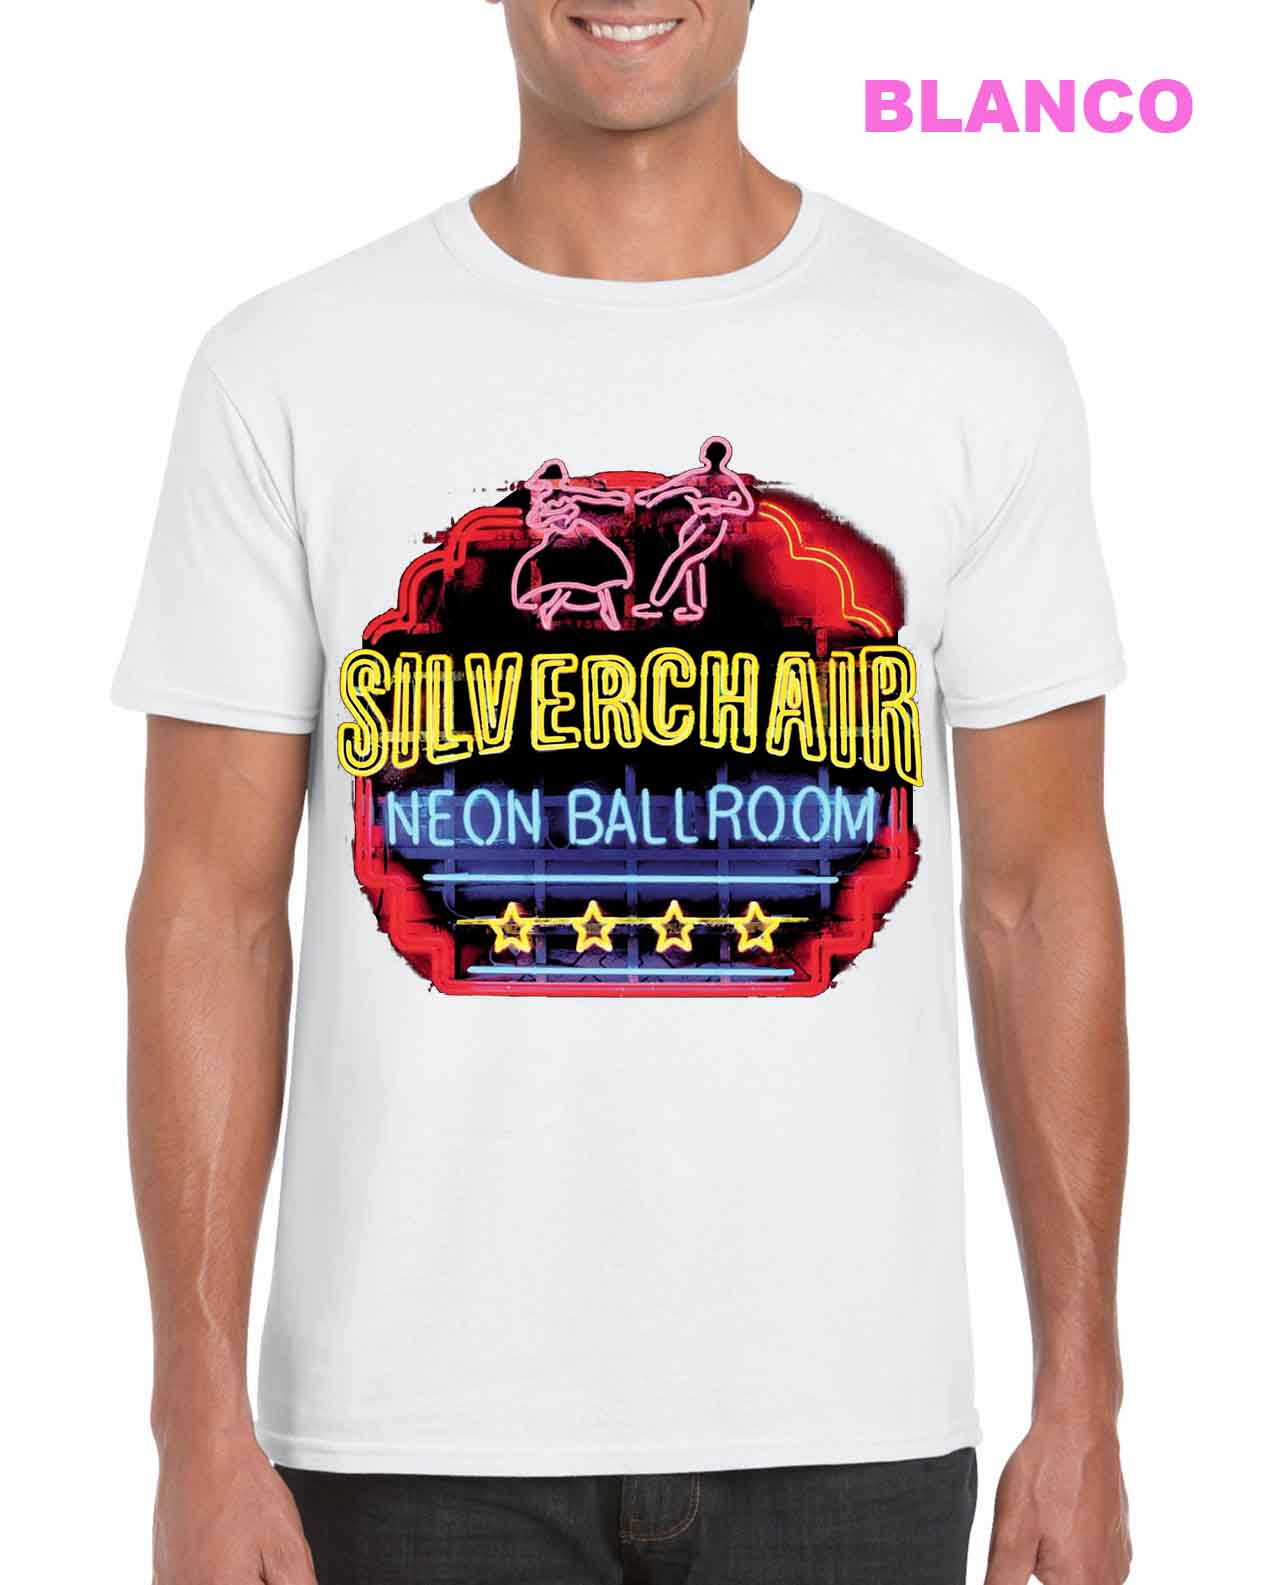 Silverchair - Neon Ball Room